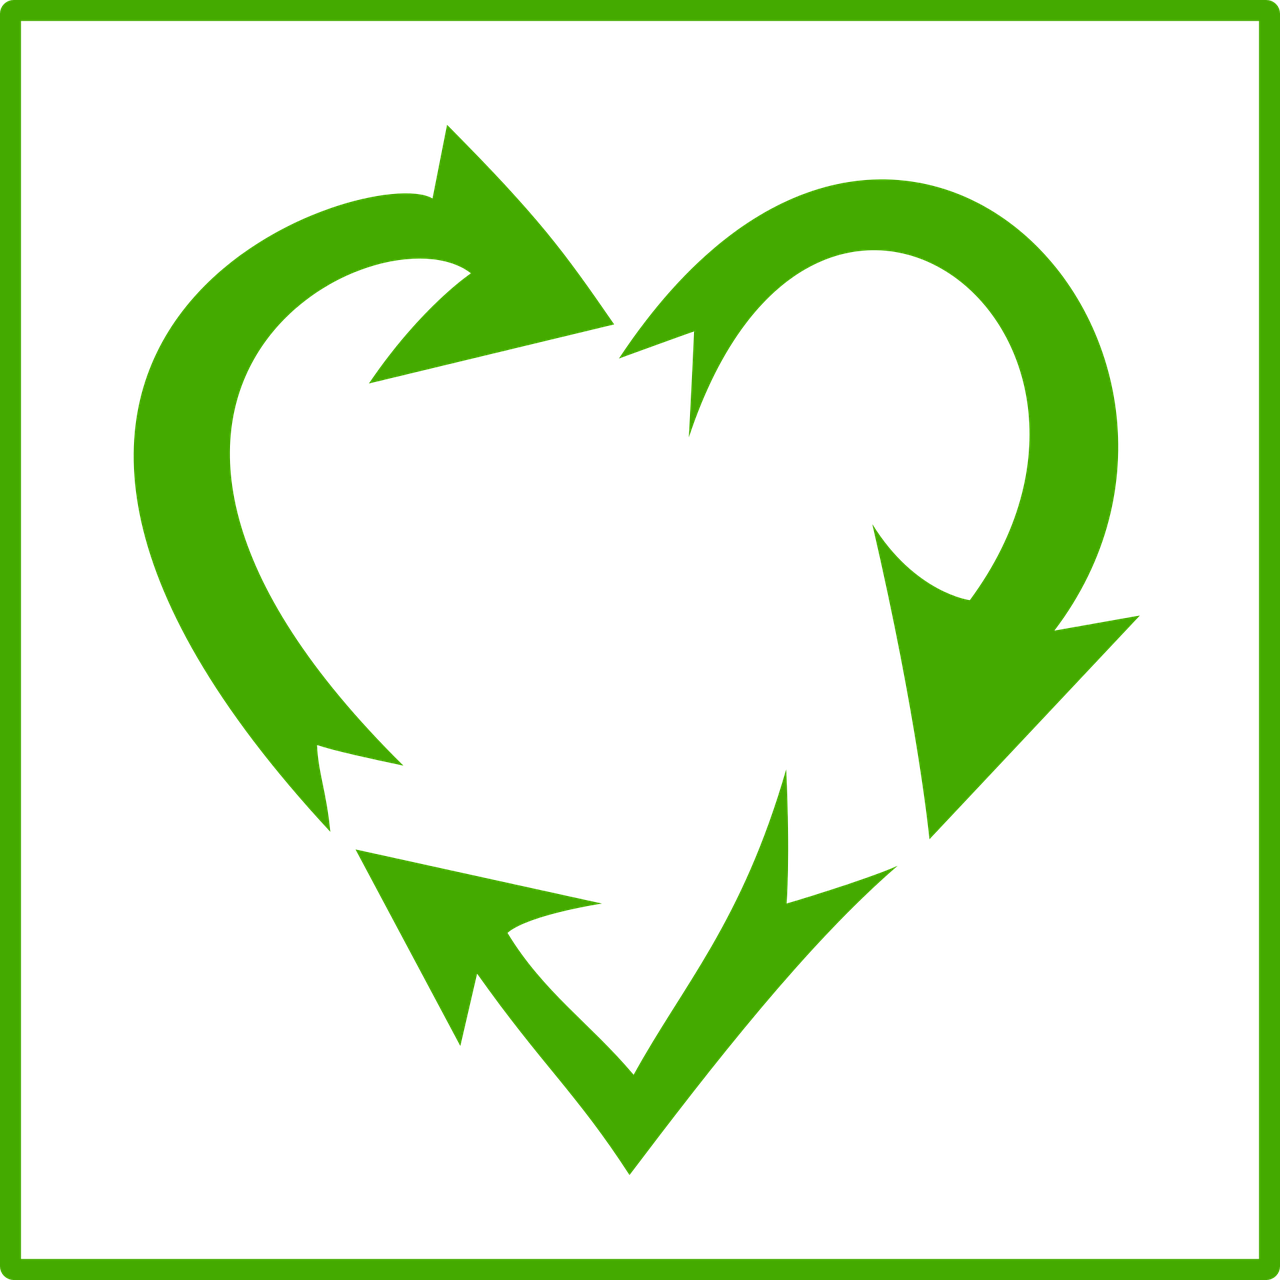 Free Image on Pixabay Environment, Green, Heart, Recycle